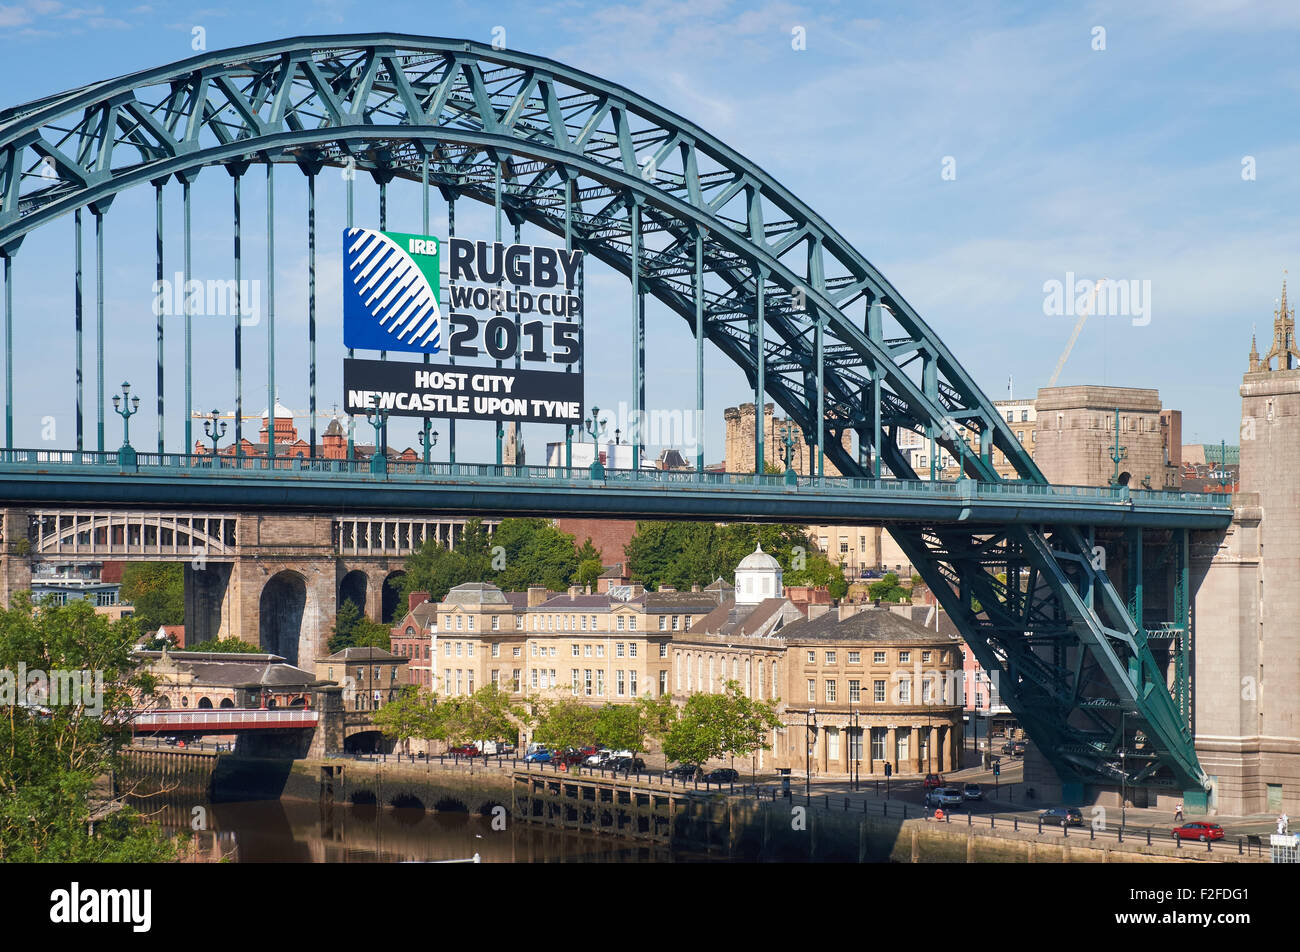 incontri gratuiti a Newcastle upon Tyne